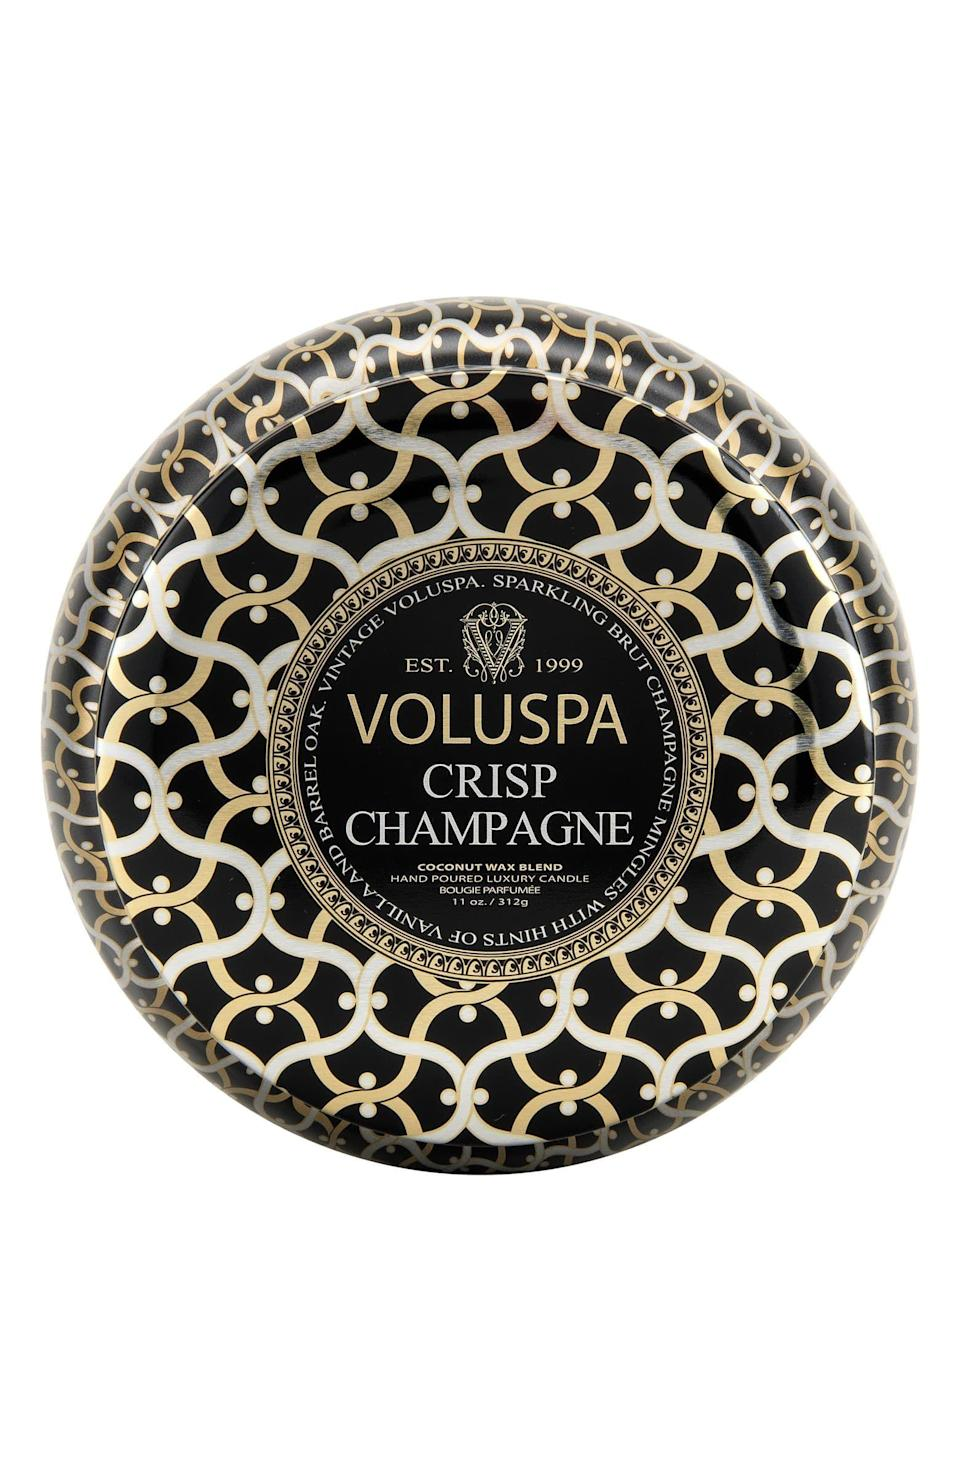 """<p><strong>VOLUSPA</strong></p><p>nordstrom.com</p><p><strong>$18.00</strong></p><p><a href=""""https://go.redirectingat.com?id=74968X1596630&url=https%3A%2F%2Fwww.nordstrom.com%2Fs%2Fvoluspa-maison-noir-crisp-champagne-maison-metallo-two-wick-candle%2F3242764&sref=https%3A%2F%2Fwww.harpersbazaar.com%2Fbeauty%2Fg33481900%2Fnordstrom-anniversary-sale-2020-best-beauty-makeup-deals%2F"""" rel=""""nofollow noopener"""" target=""""_blank"""" data-ylk=""""slk:SHOP NOW"""" class=""""link rapid-noclick-resp"""">SHOP NOW</a></p><p><strong>Sale: $12</strong></p><p>Value: $18</p><p>Caviar taste on a shoestring budget? Volupsa's crisp champagne candle is one of our top picks for fancy-looking inexpensive candles, with a scent that that transports us to a sunny day in the south of France with gentle hints of vanilla and barrel oak. A very wise item to have on hand as a failsafe gift. </p>"""